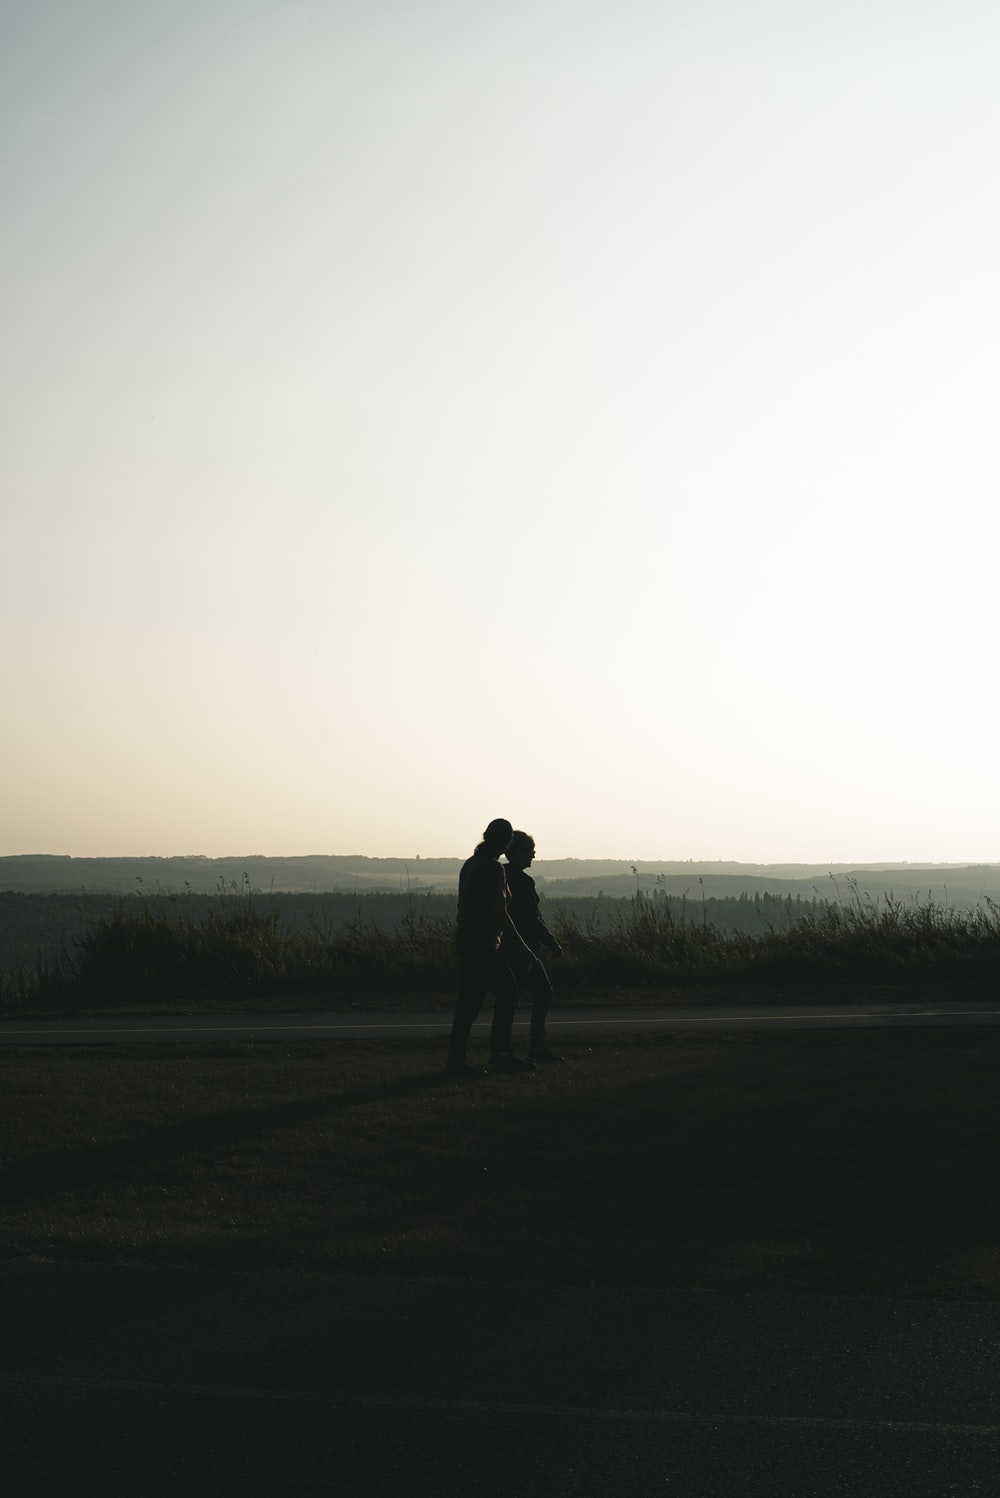 silhouette of man standing on grass field during daytime